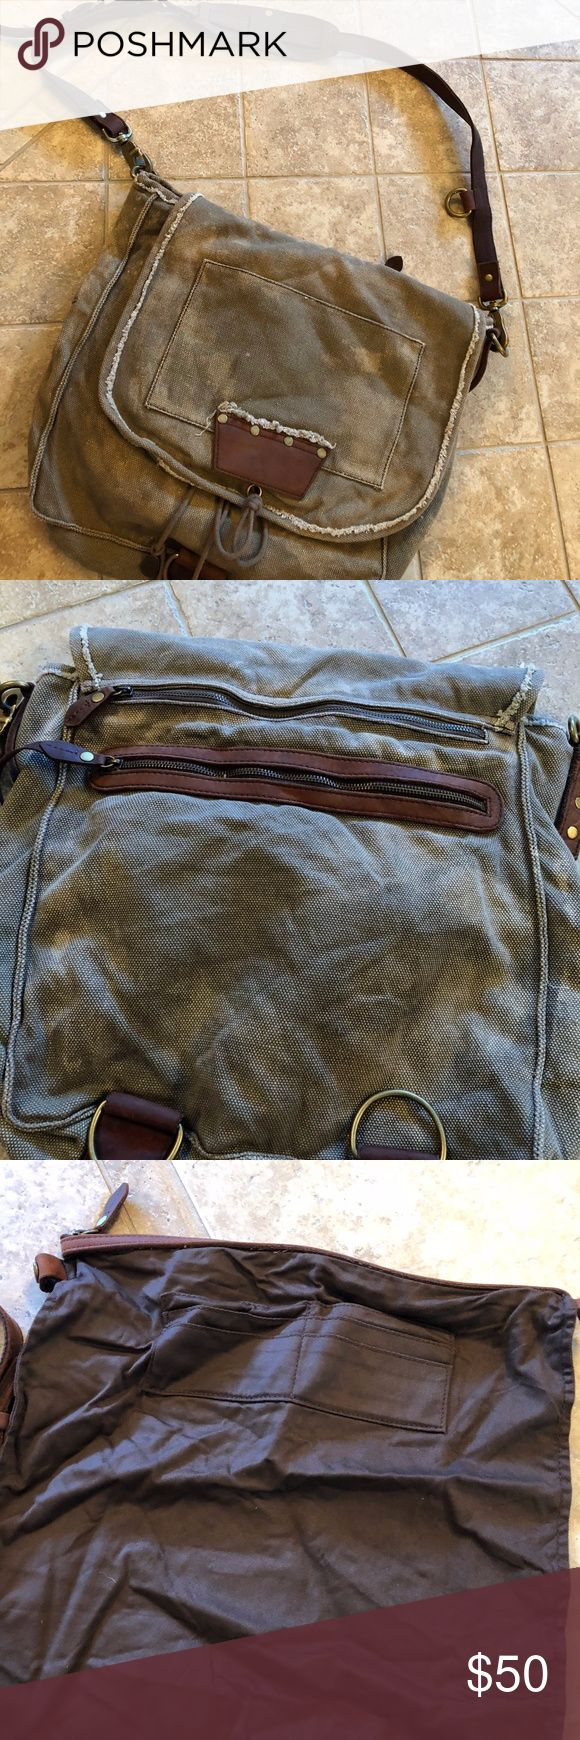 Juicy Couture Messenger Bag Men or Women This bag is in EUC...the strap is very long, better fit for a tall person. There is a skull on the inside flap and some removable pockets. Juicy Couture Bags Messenger Bags